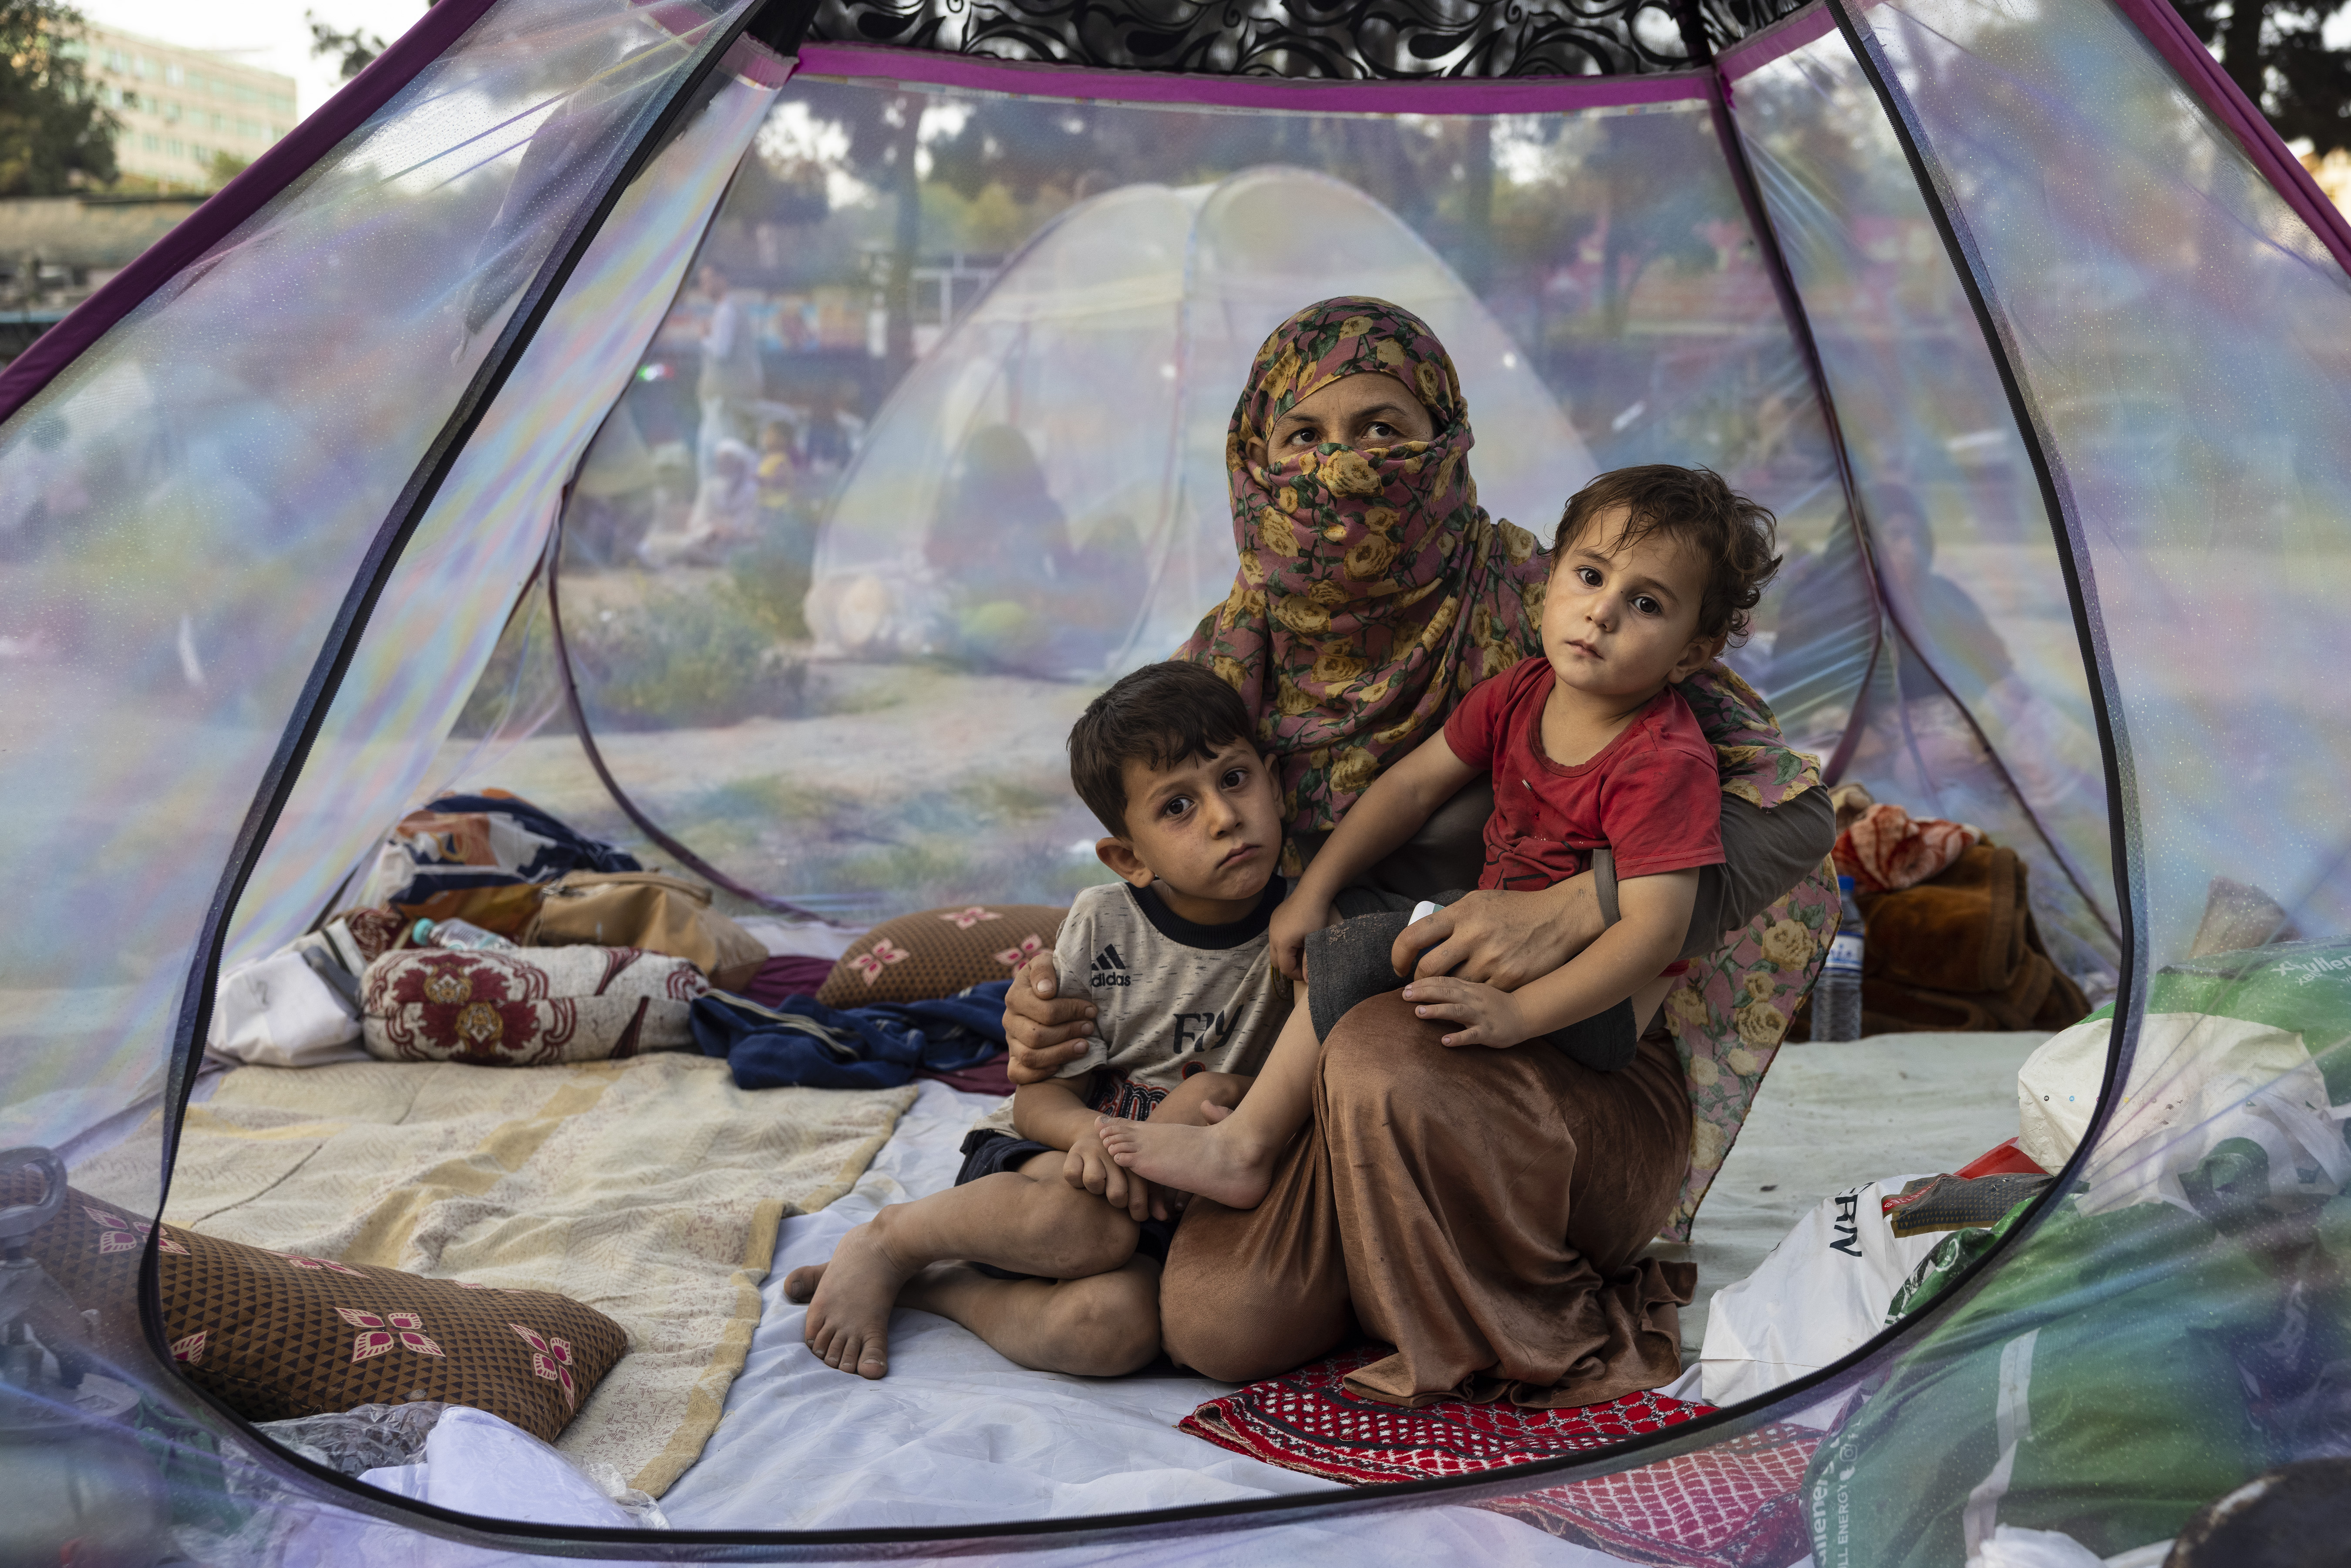 Farzia, 28, who lost her husband in Baghlan one week ago to fighting by the Taliban sits with her children, Subhan, 5, and Ismael ,2, in a tent at a makeshift IDP camp in Share-e-Naw park to various mosques and schools on August 12, 2021 in Kabul, Afghanistan. People displaced by the Taliban advancing are flooding into the Kabul capital to escape the Taliban takeover of their provinces. (Photo by Paula Bronstein/Getty Images)